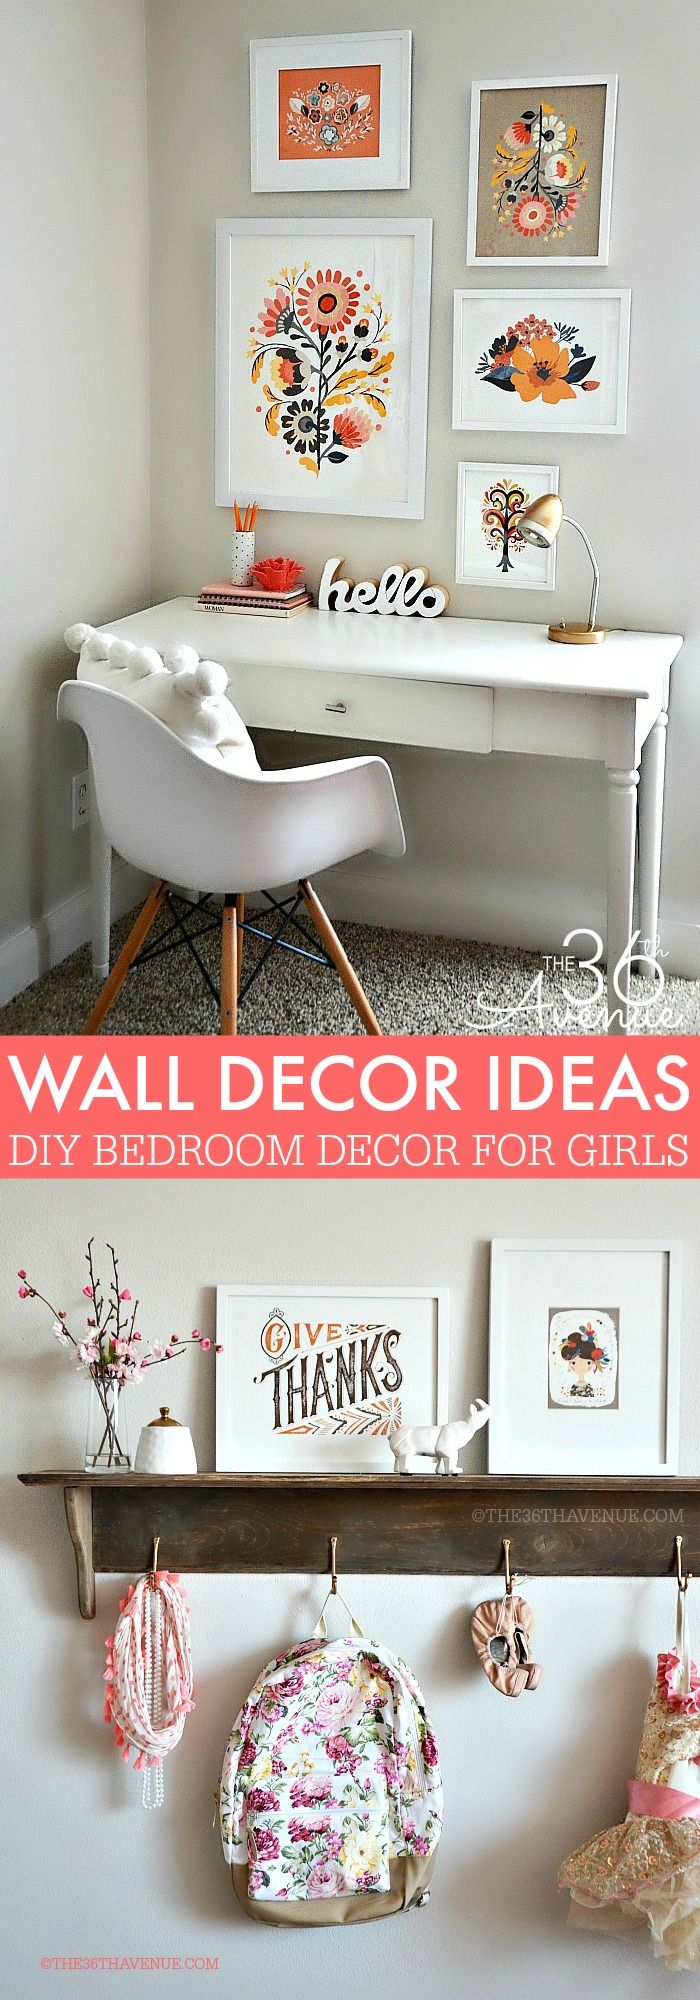 Home Decor Wall Decor Ideas At The36thavenue Com Pin It Now And Decorate Later